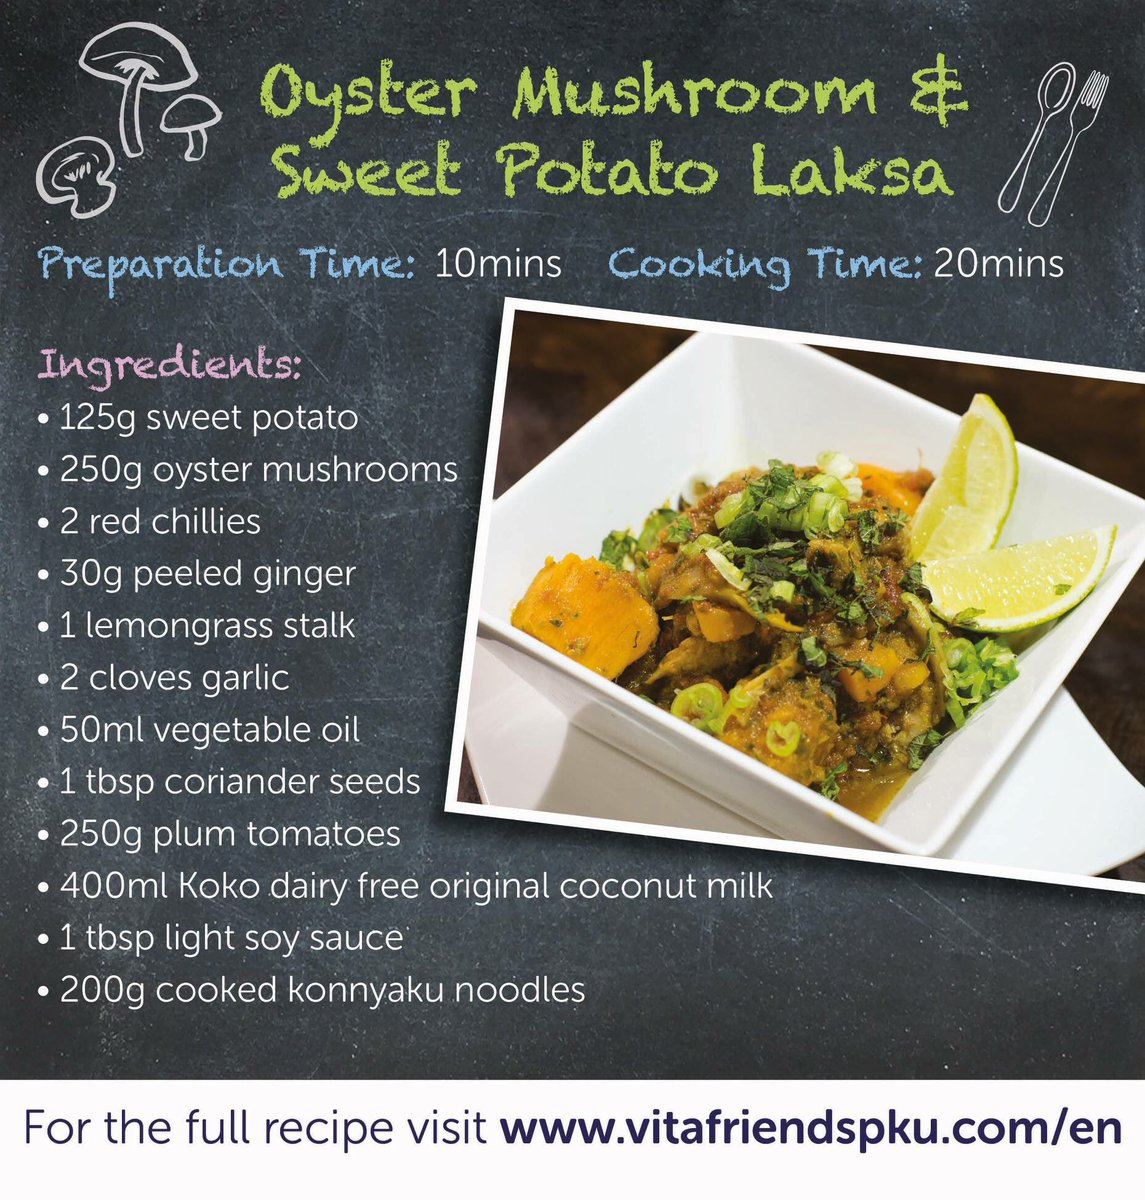 Fancy something a bit different for tea tonight? Give this Oyster Mushroom and Sweet Potato Laksa a go for the ultimate Indonesian Fakeaway! Recipe is here:  https://www. vitafriendspku.com/en/recipes/oys ter-mushroom-sweet-potato-laksa/ &nbsp; …  #pku #pkurecipes #FakeawayMay<br>http://pic.twitter.com/XCh7PEpJYi